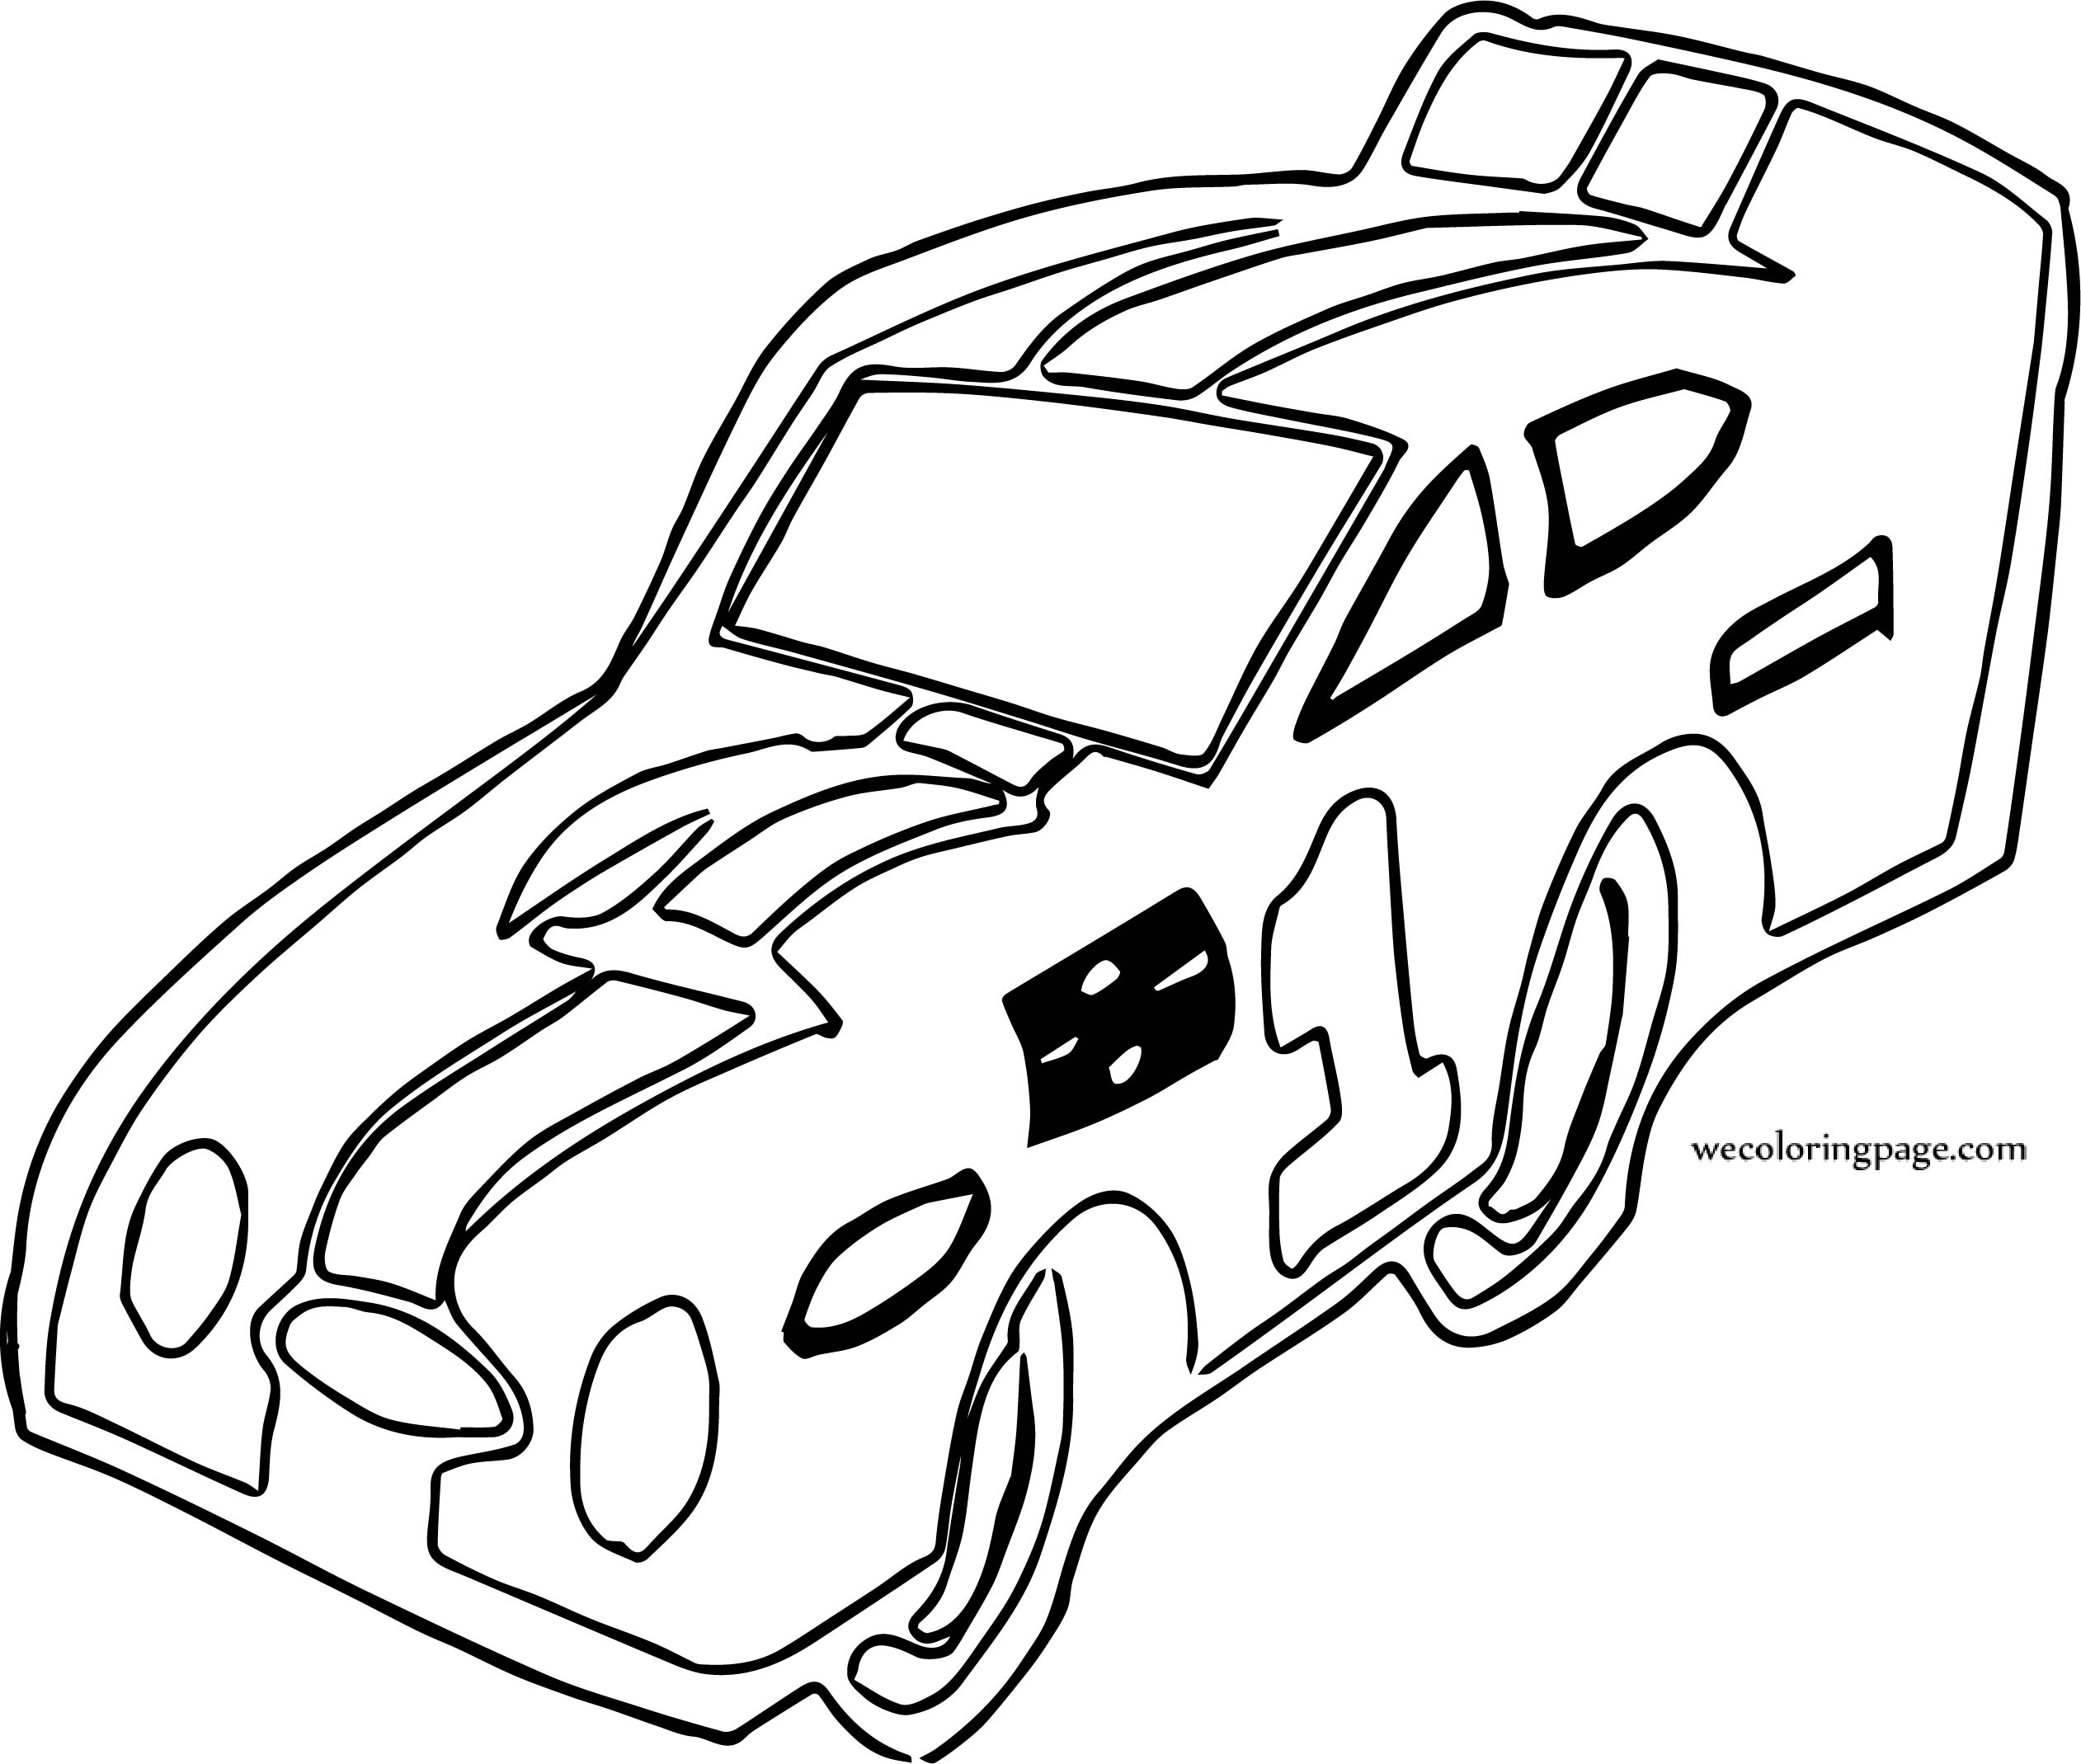 Outline Sport Car Coloring Page